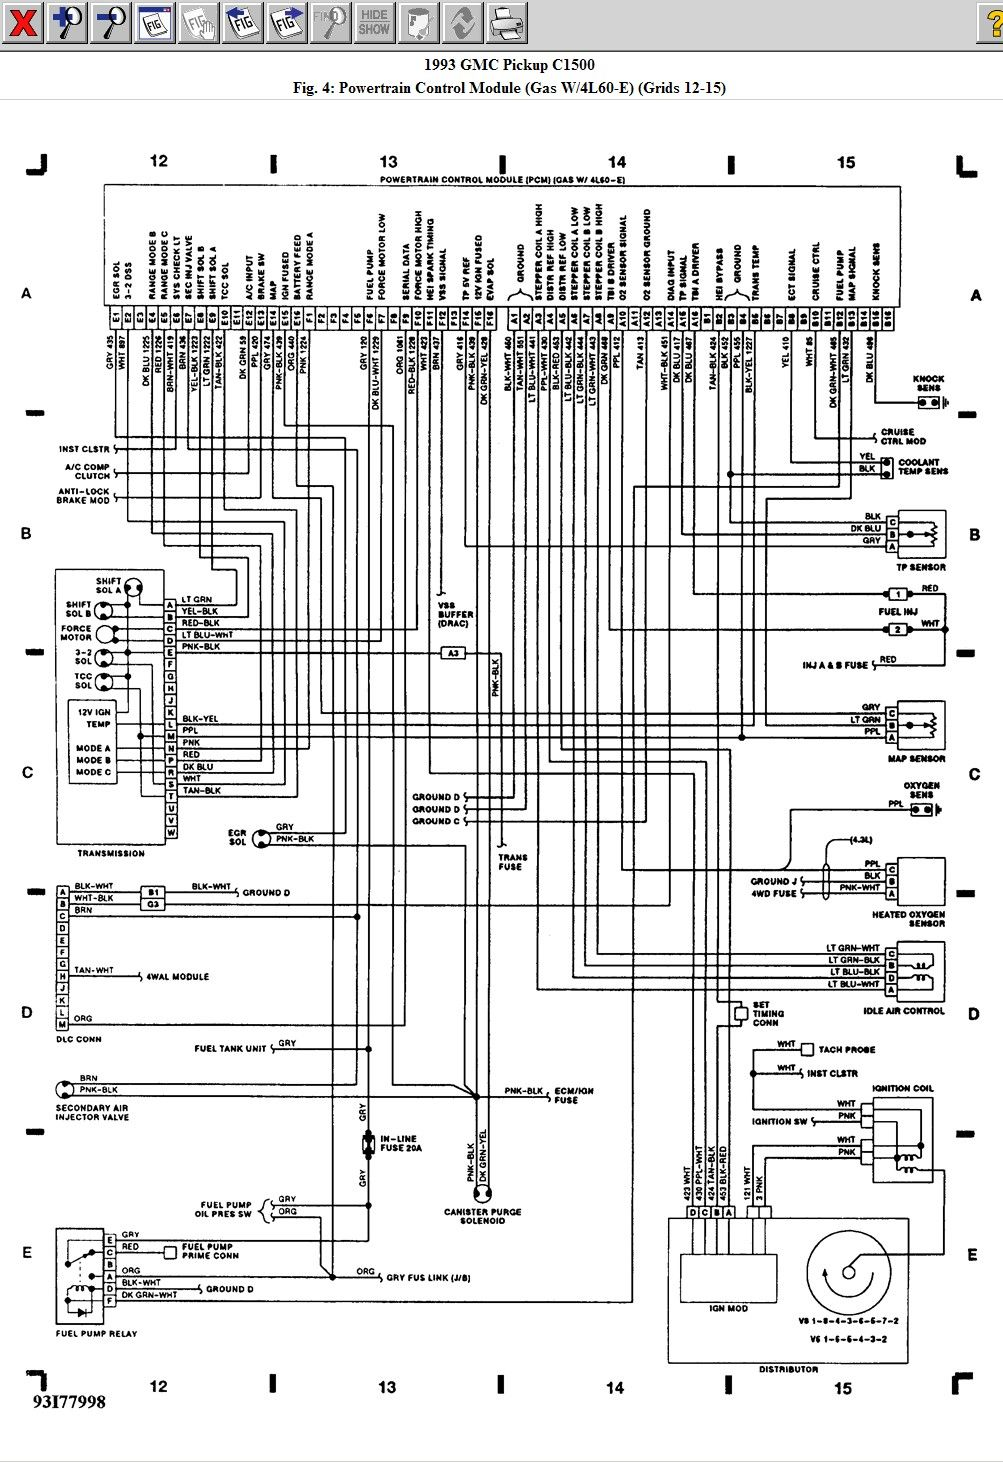 Wiring Diagram For 1993 Gmc Pickup